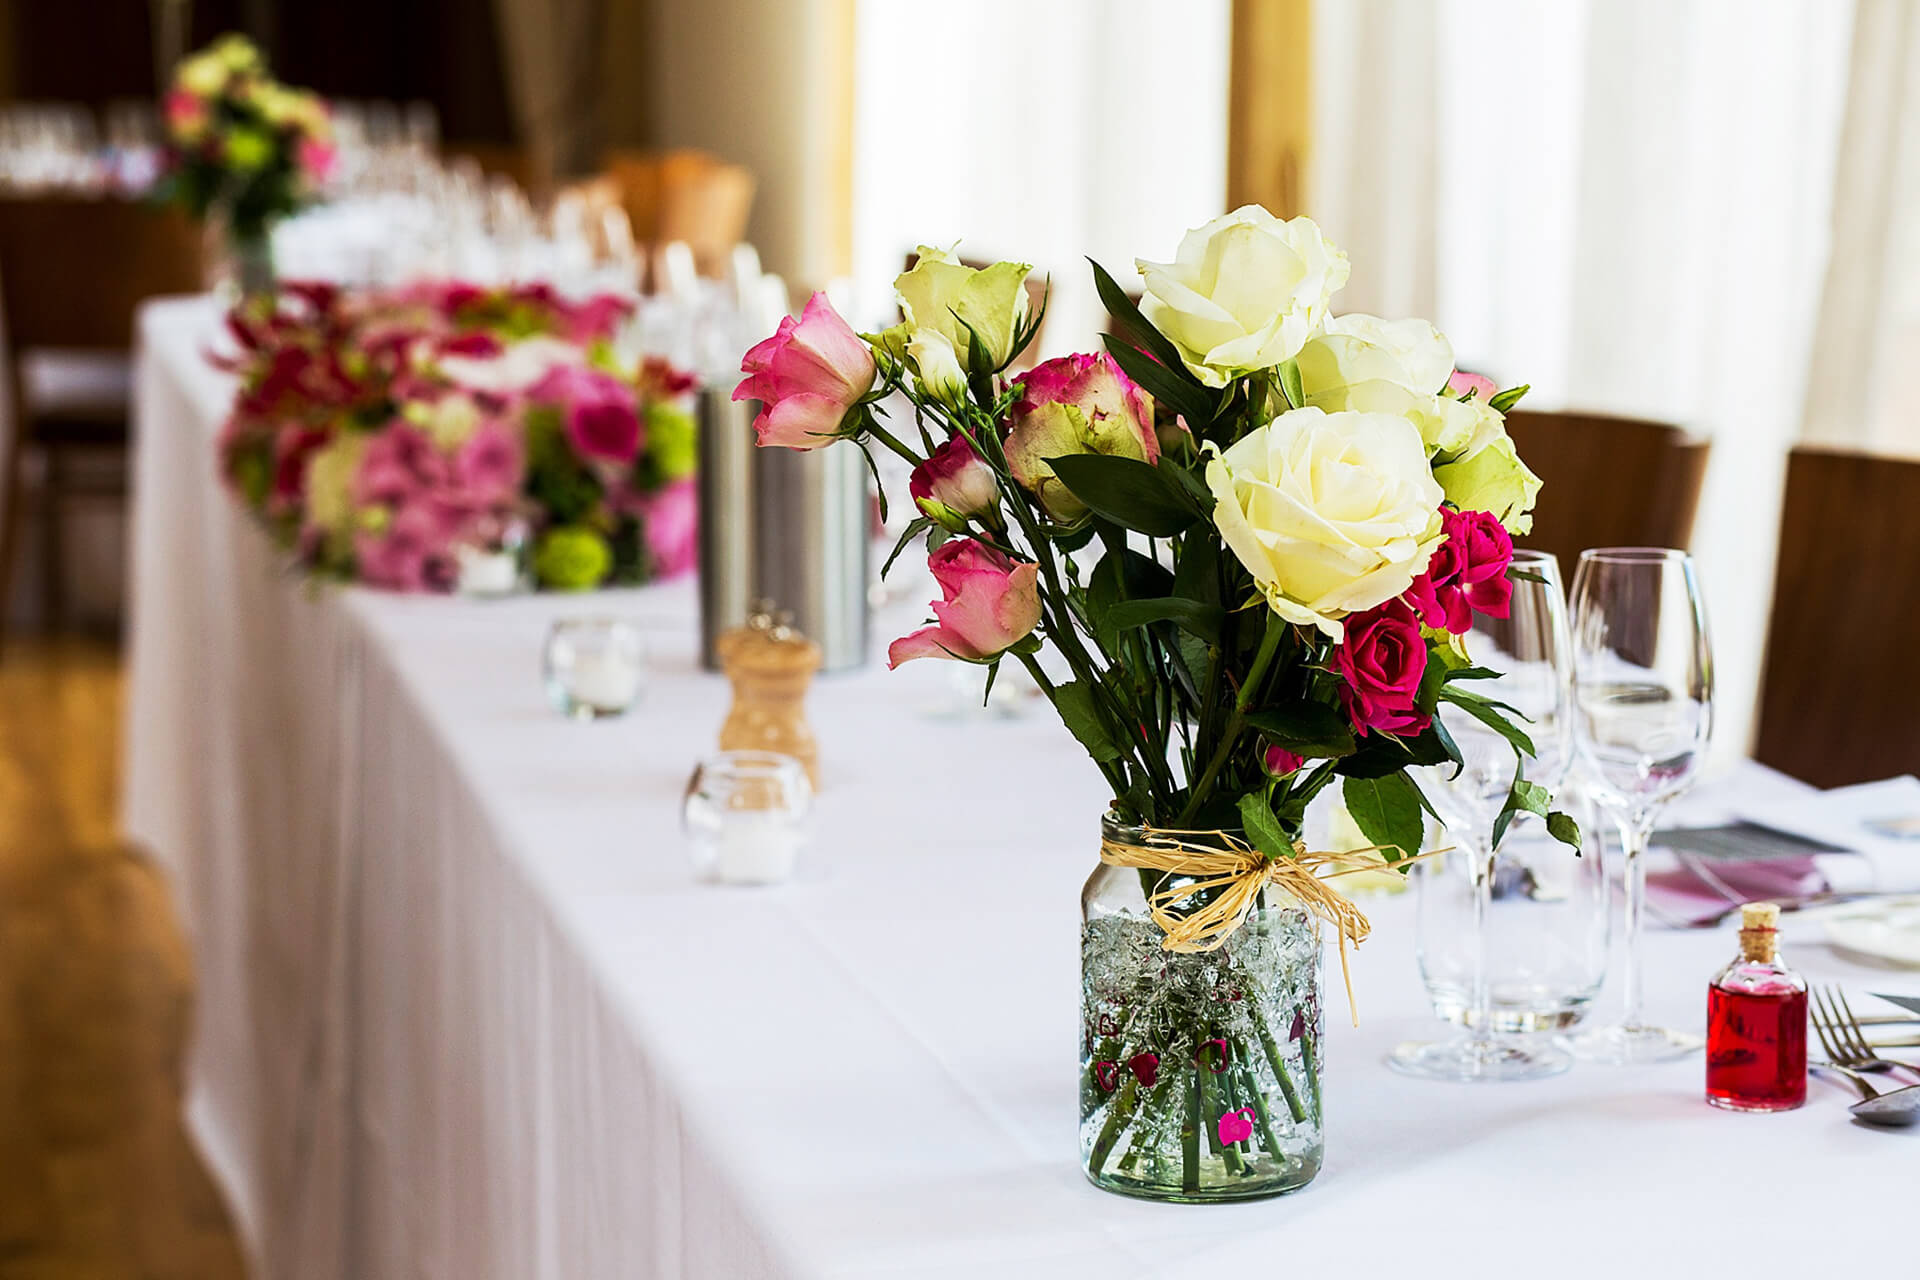 The couple decorated the top table with vases of pink and white flowers – wedding ideas